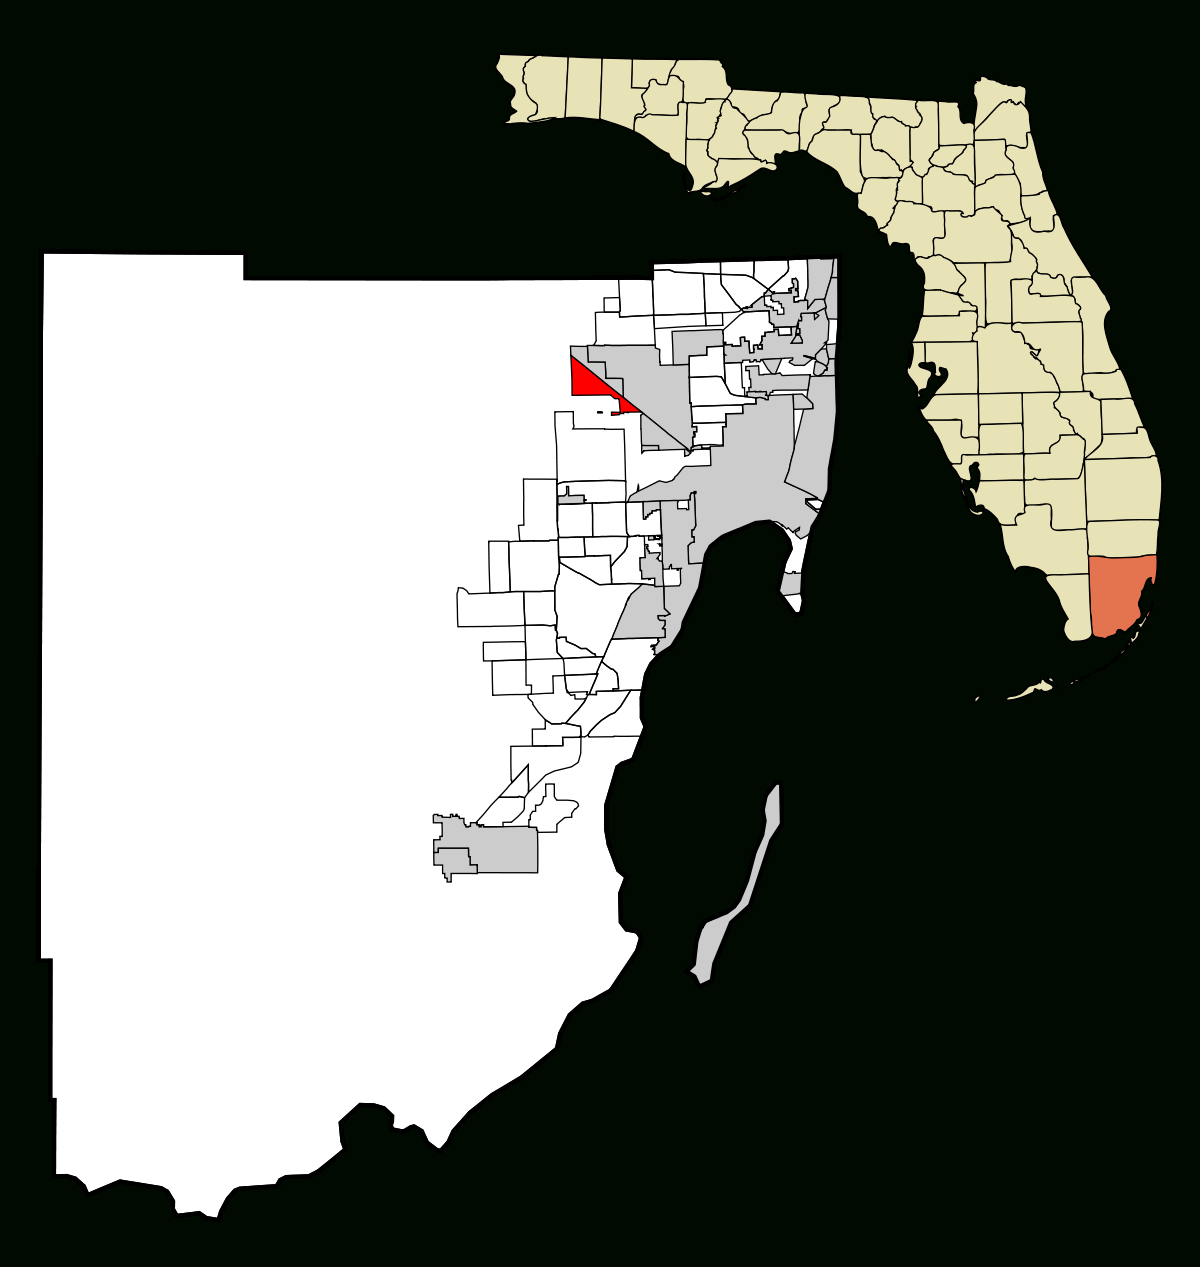 Medley, Florida - Wikipedia - Medley Florida Map